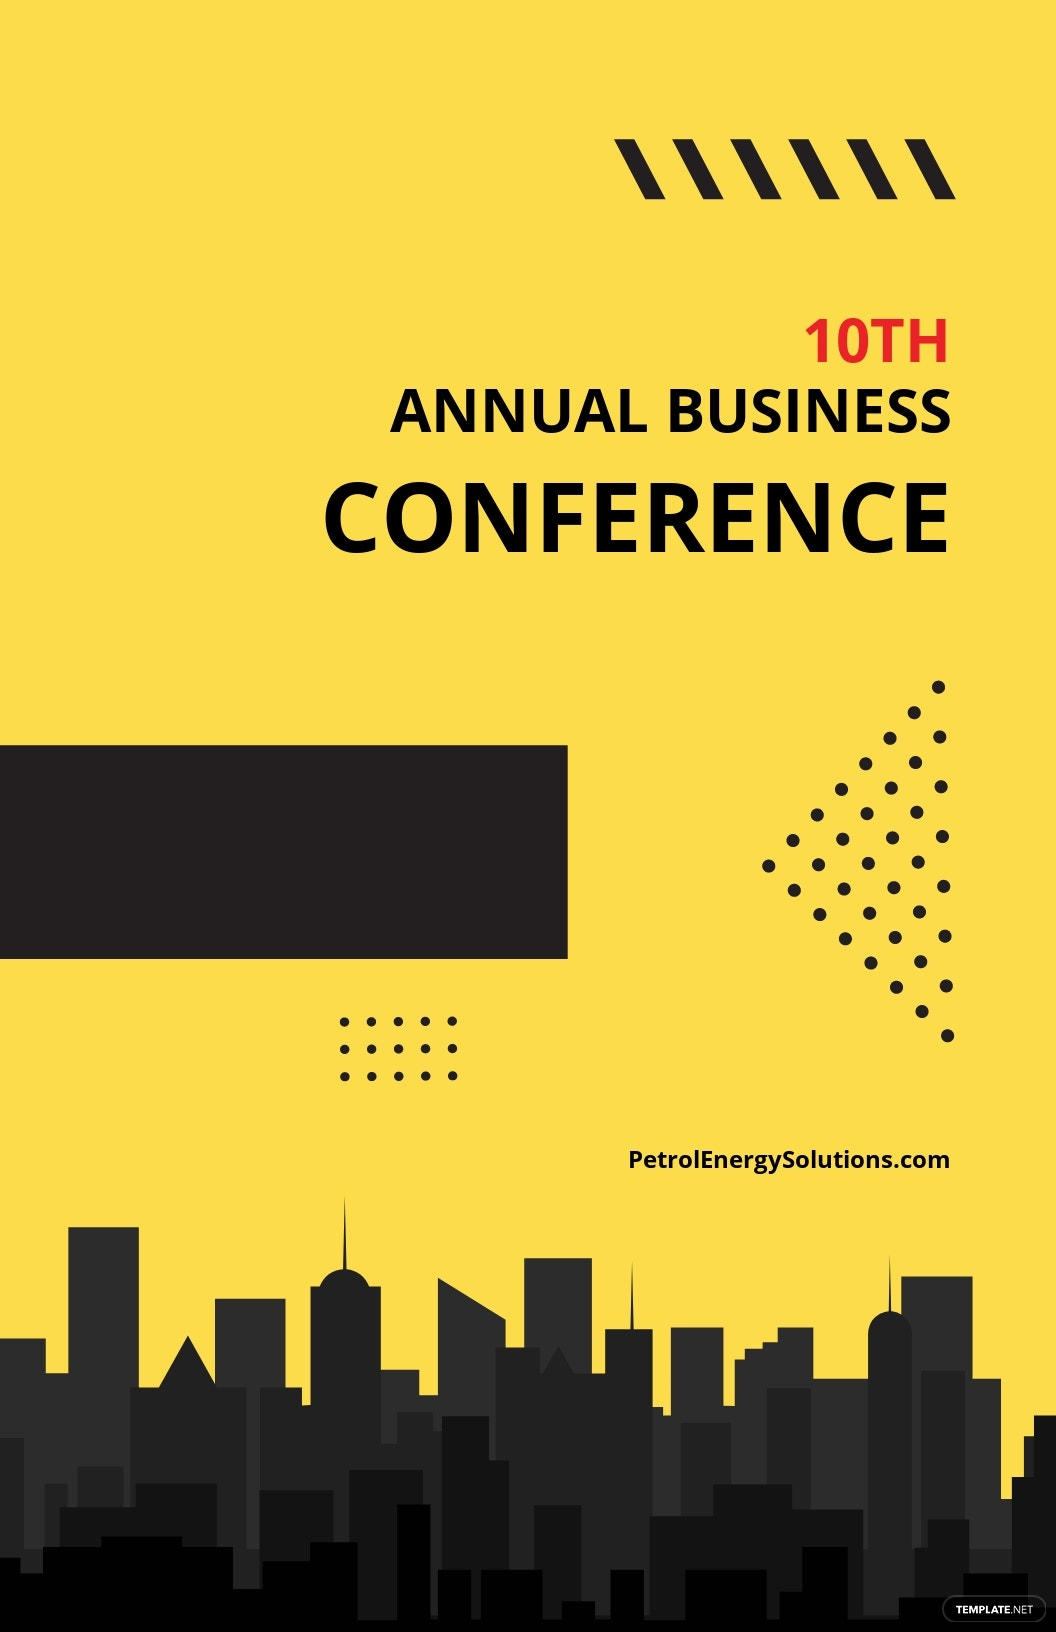 Conference Poster Template [Free JPG] - Illustrator, Apple Pages, PSD